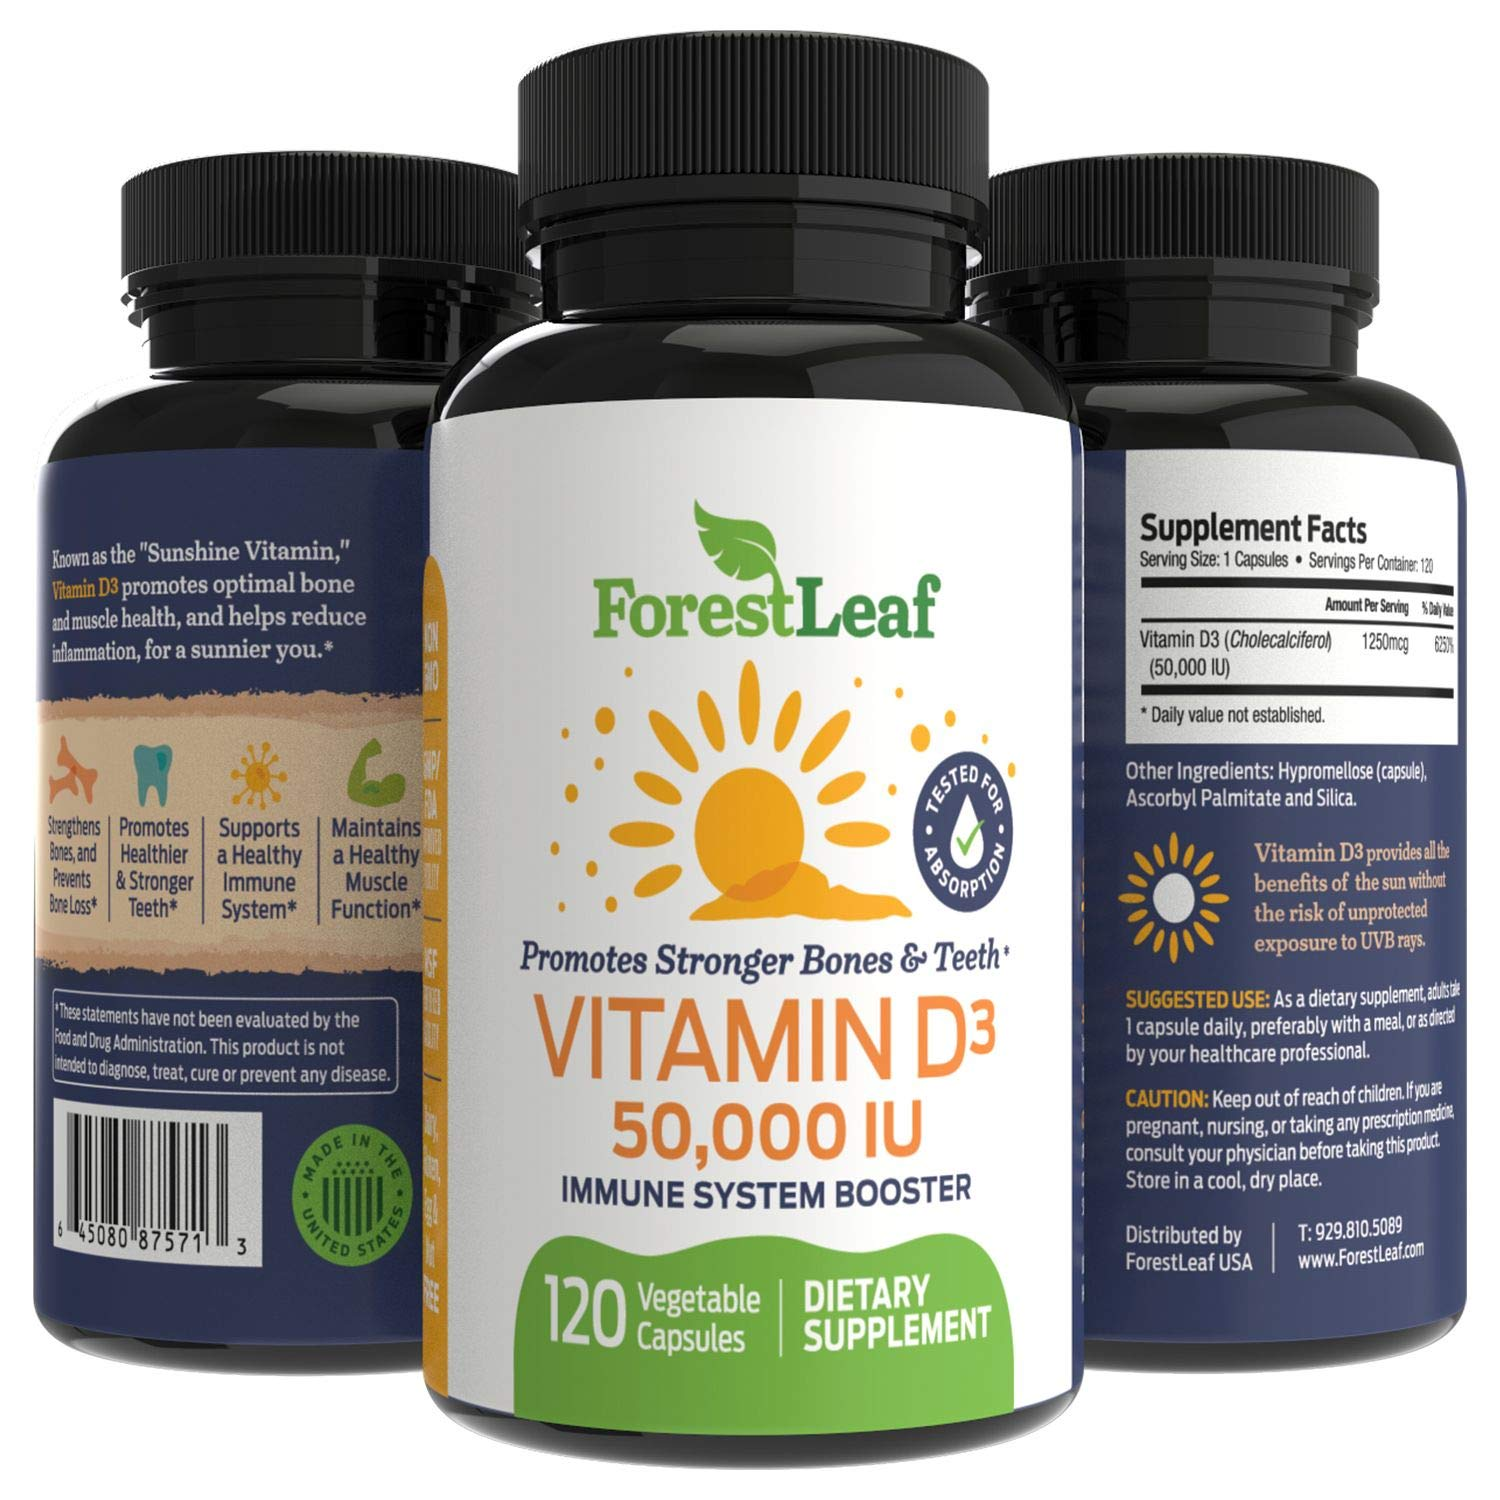 Vitamin D3 50,000 IU Weekly Supplement - 120 Vegetable Capsules - Helps Boost and Strengthen Bones, Teeth, Immune System and Muscle Function - by ForestLeaf